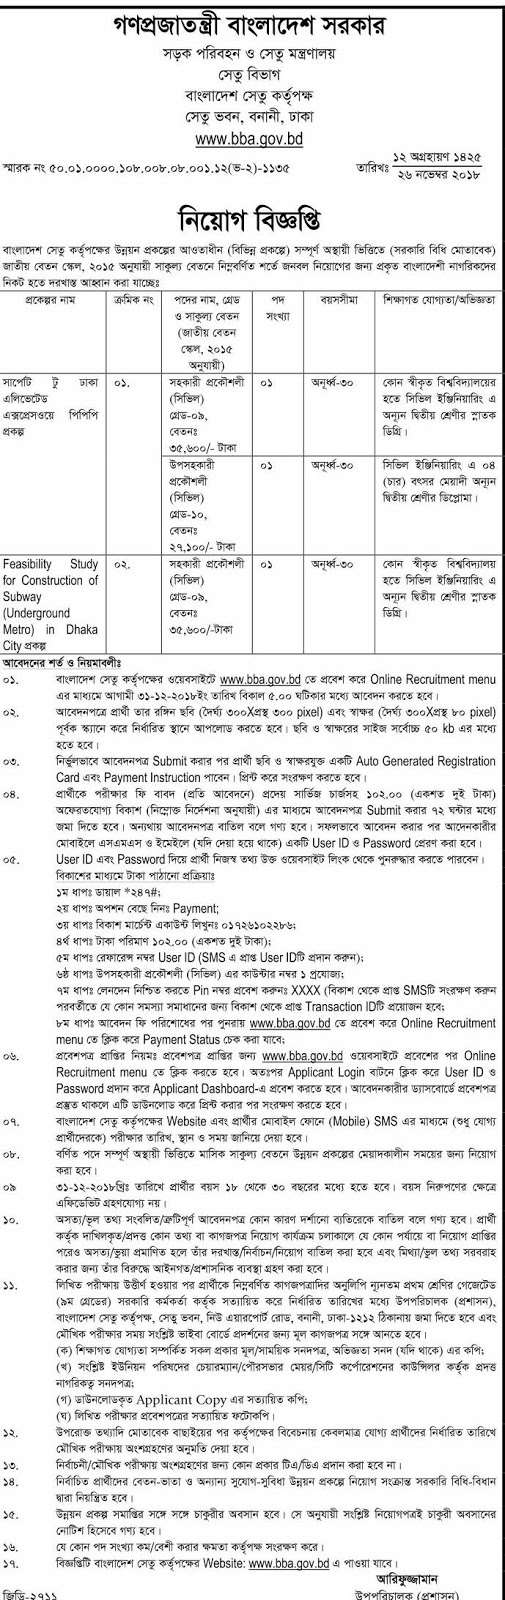 Bangladesh Bridge Authority (BBA) Job Circular 2018